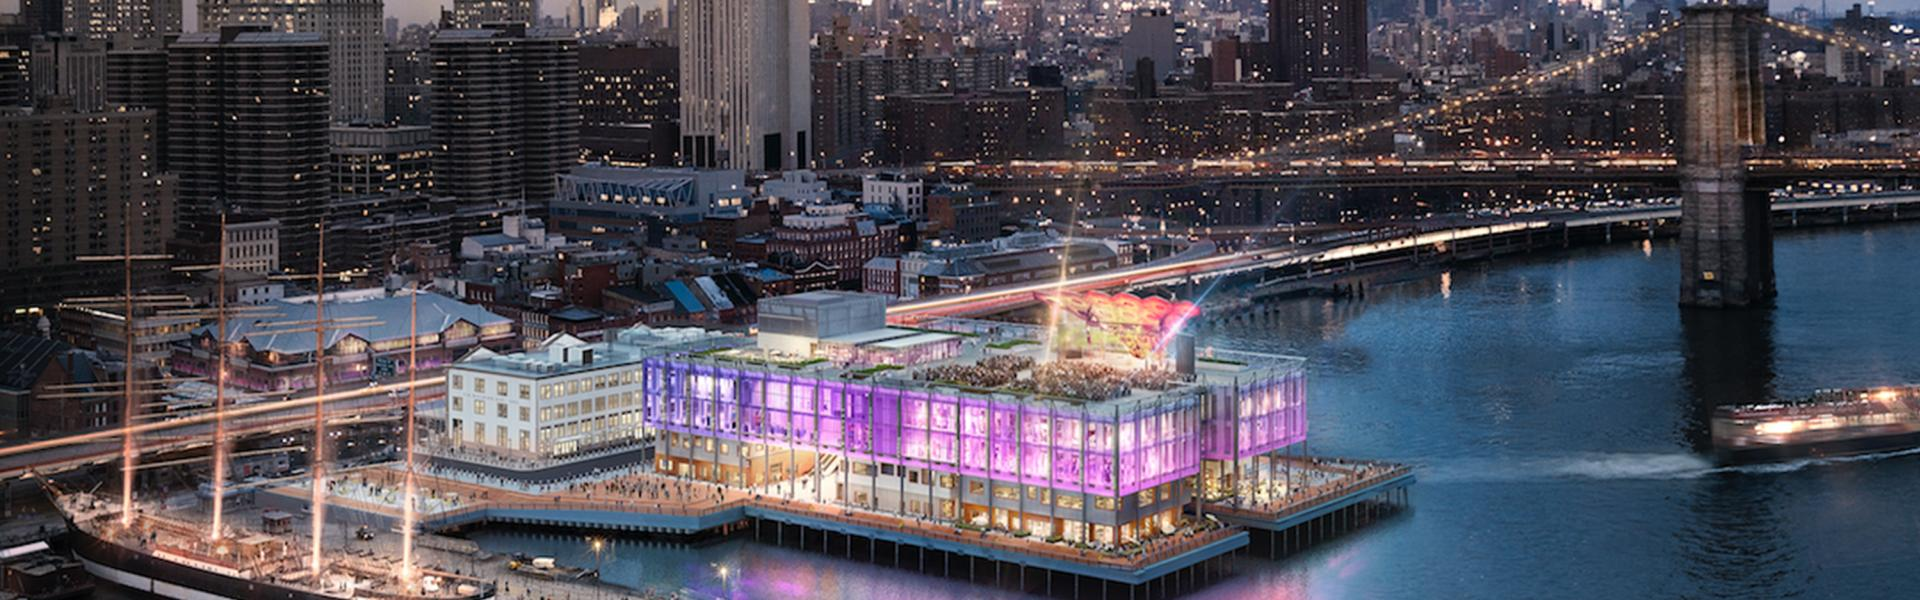 Pier 17 Seaport rendering copy